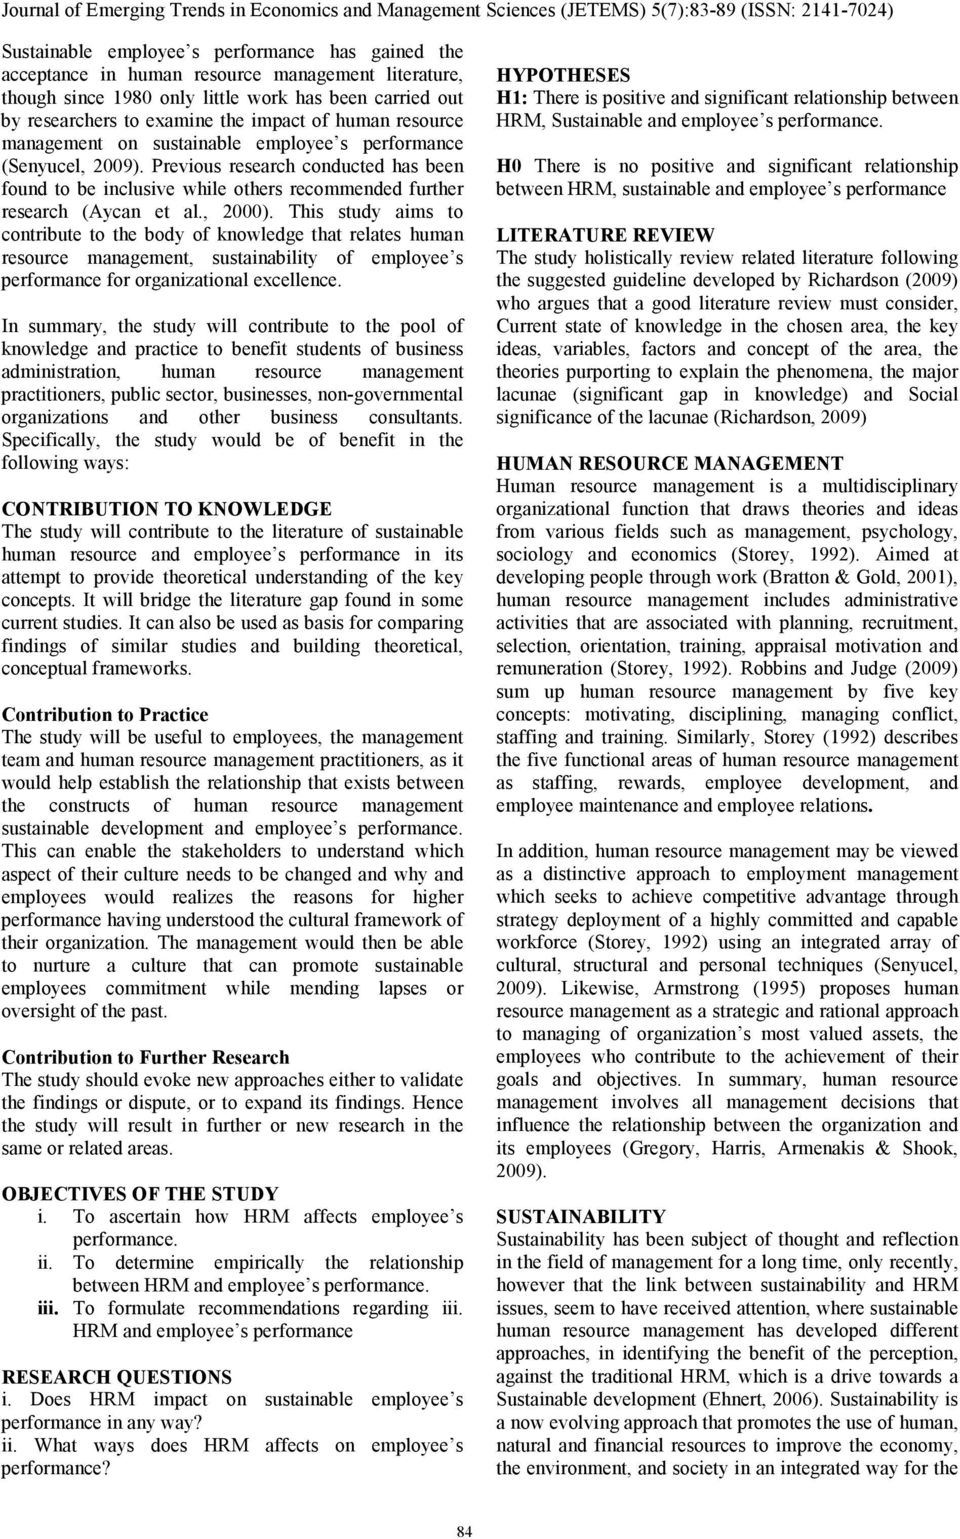 THE IMPACT OF HUMAN RESOURCE MANAGEMENT ON SUSTAINABILITY OF